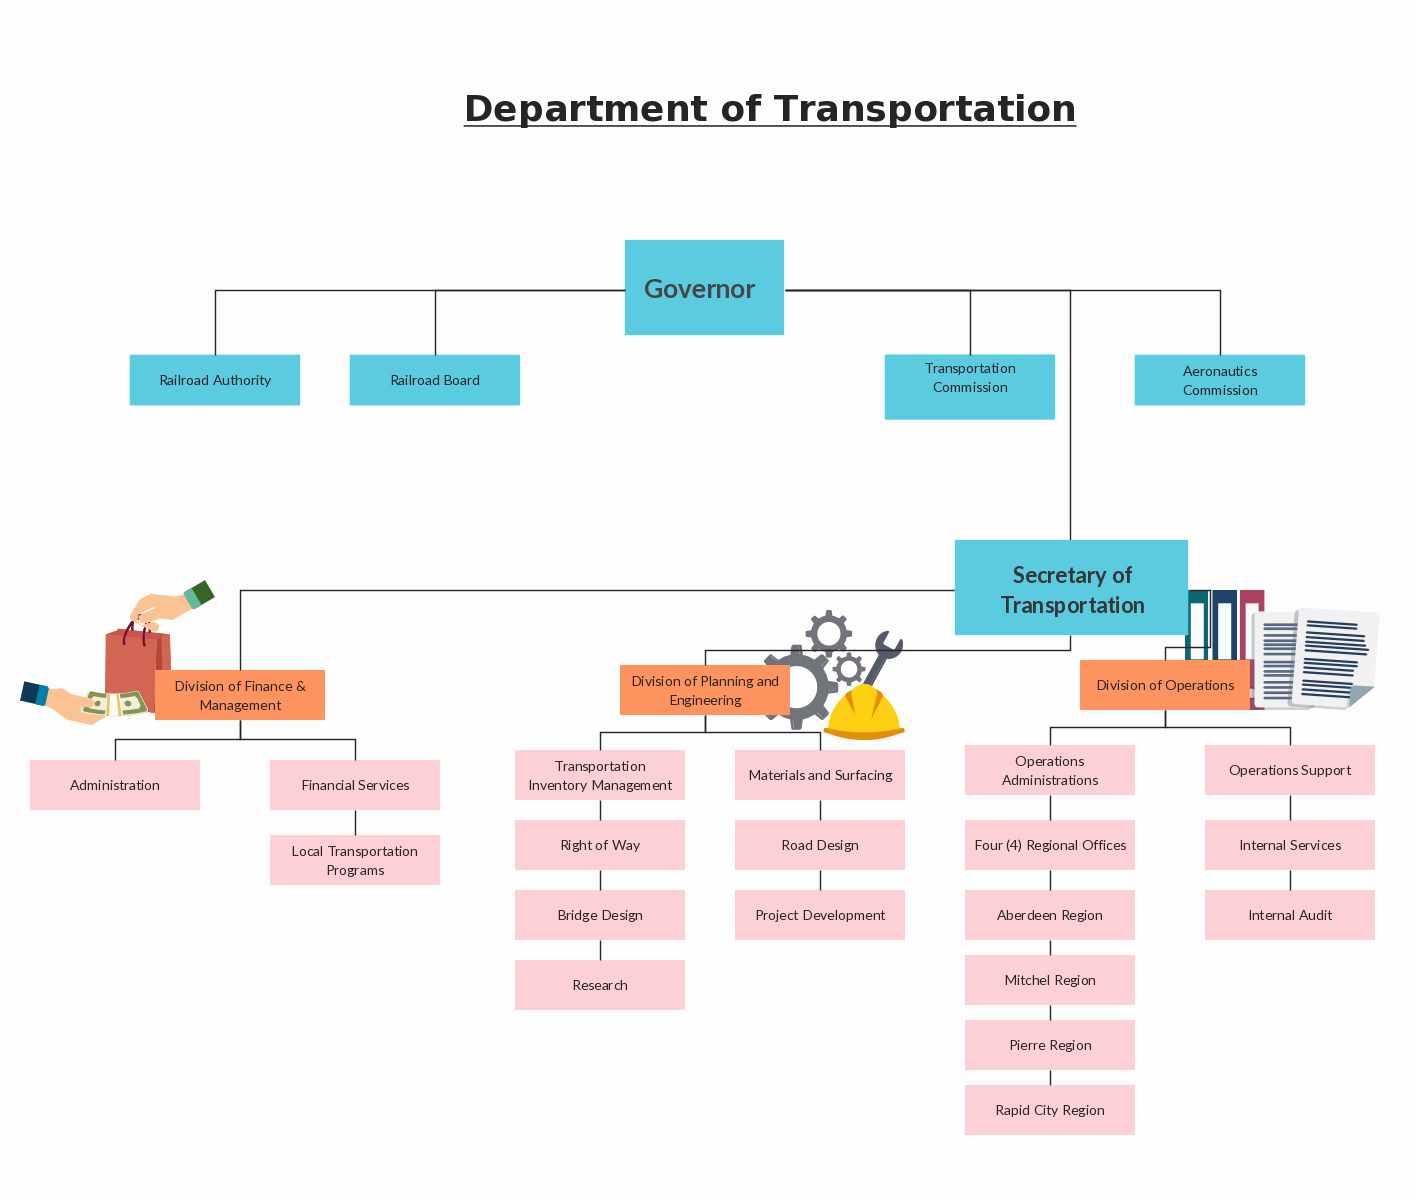 Organizational Chart Template Free Awesome organization Hierarchy In the Department Of Transportation